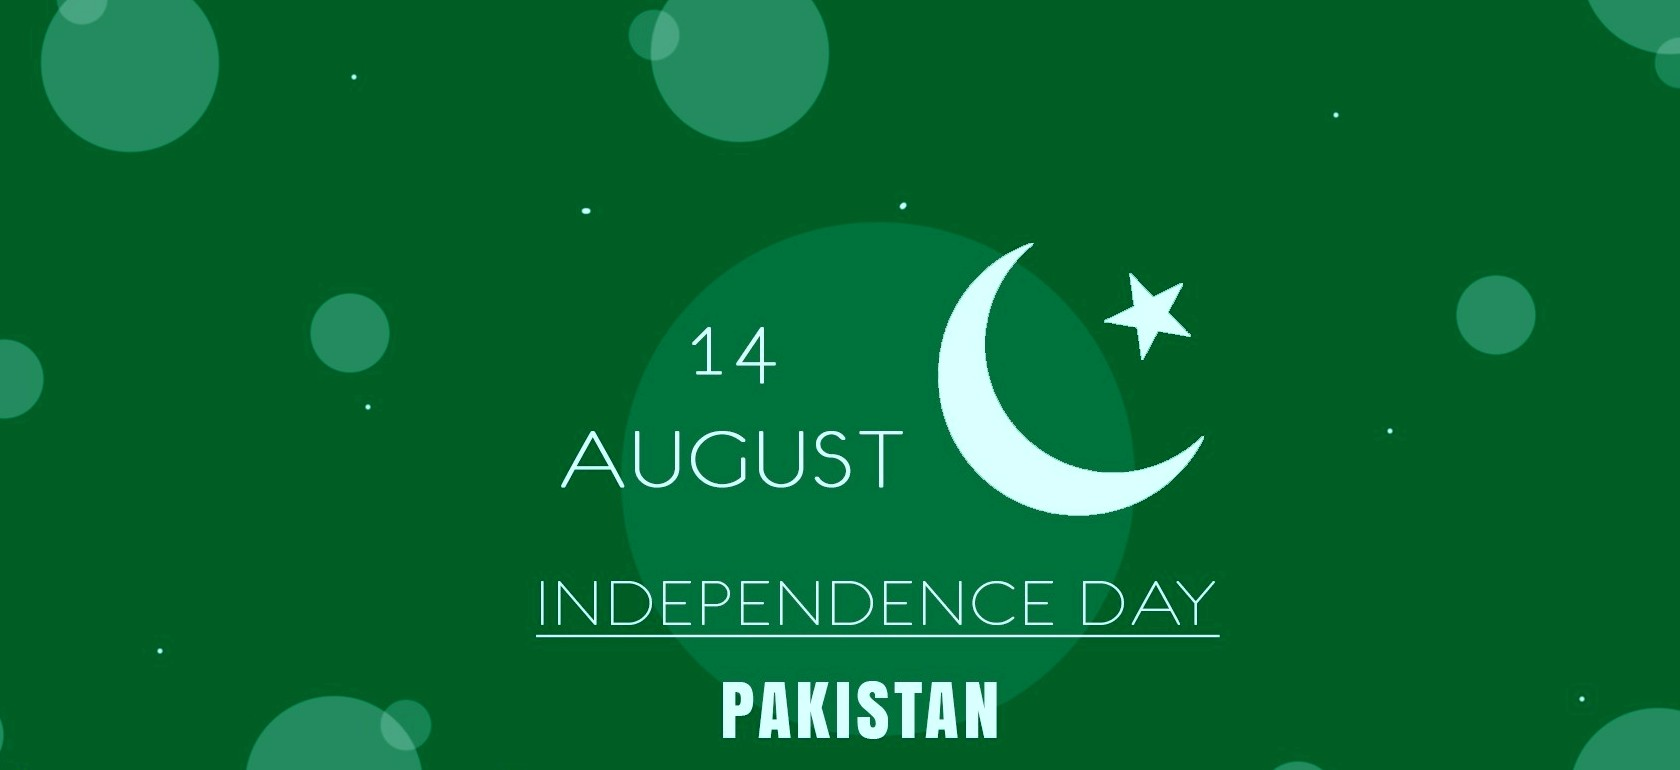 Best Independence Day in Pakistan Free Stock Images